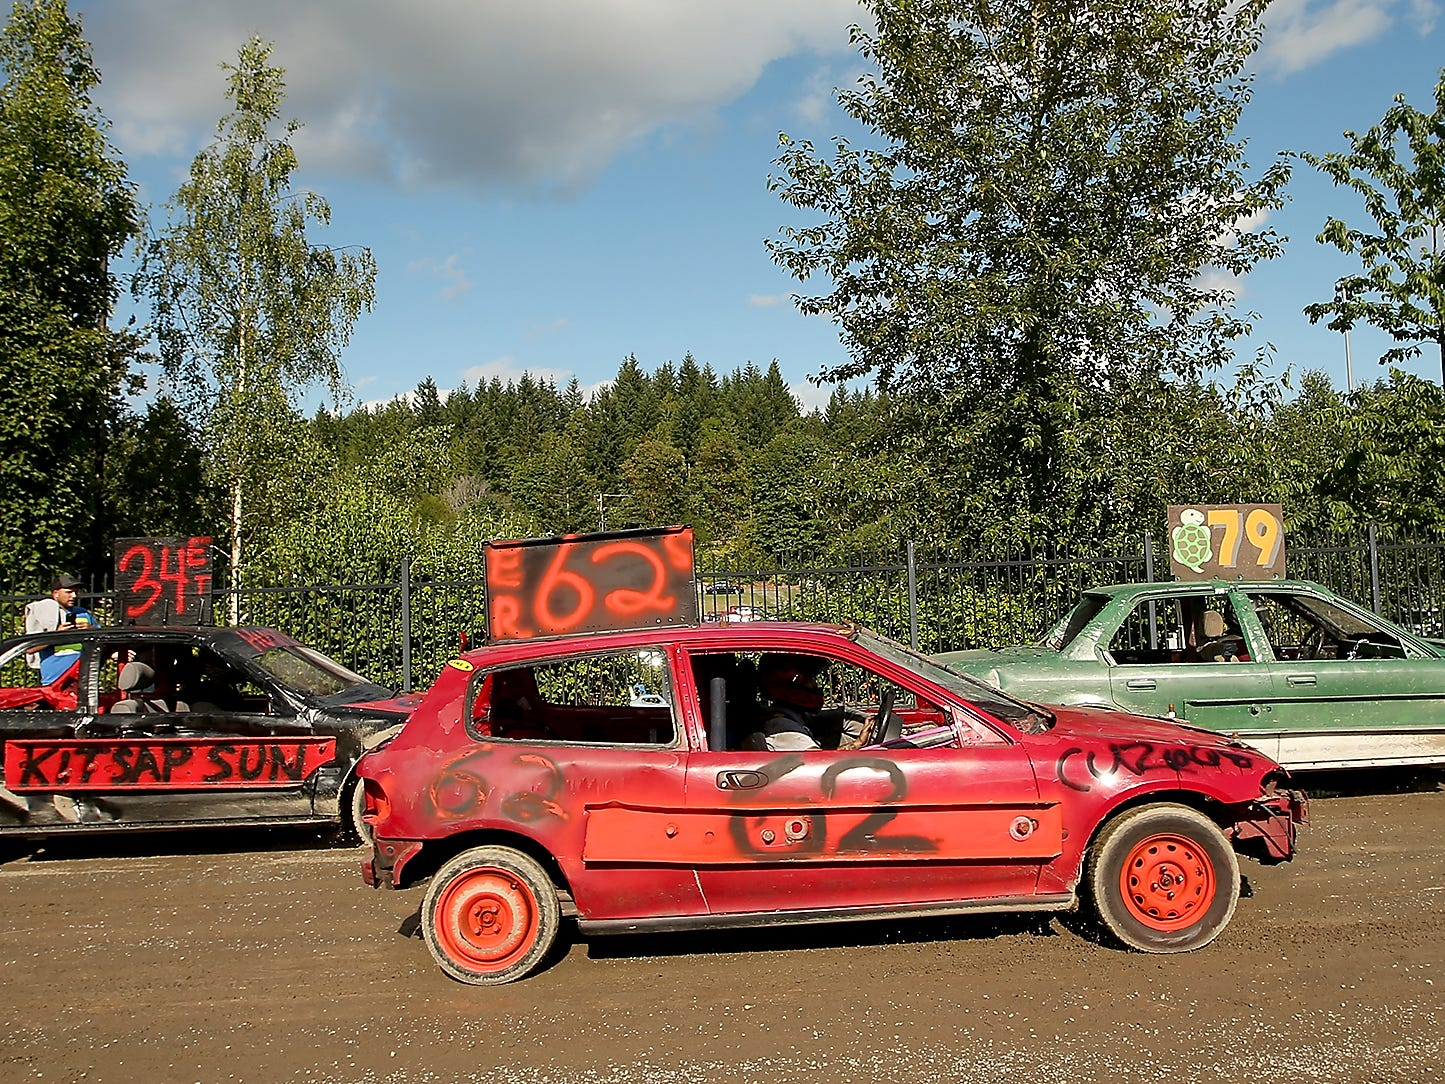 A trio of mini cars lines up prior to the start of their race for the Kitsap Destruction Derby on Saturday, June 23, 2018.